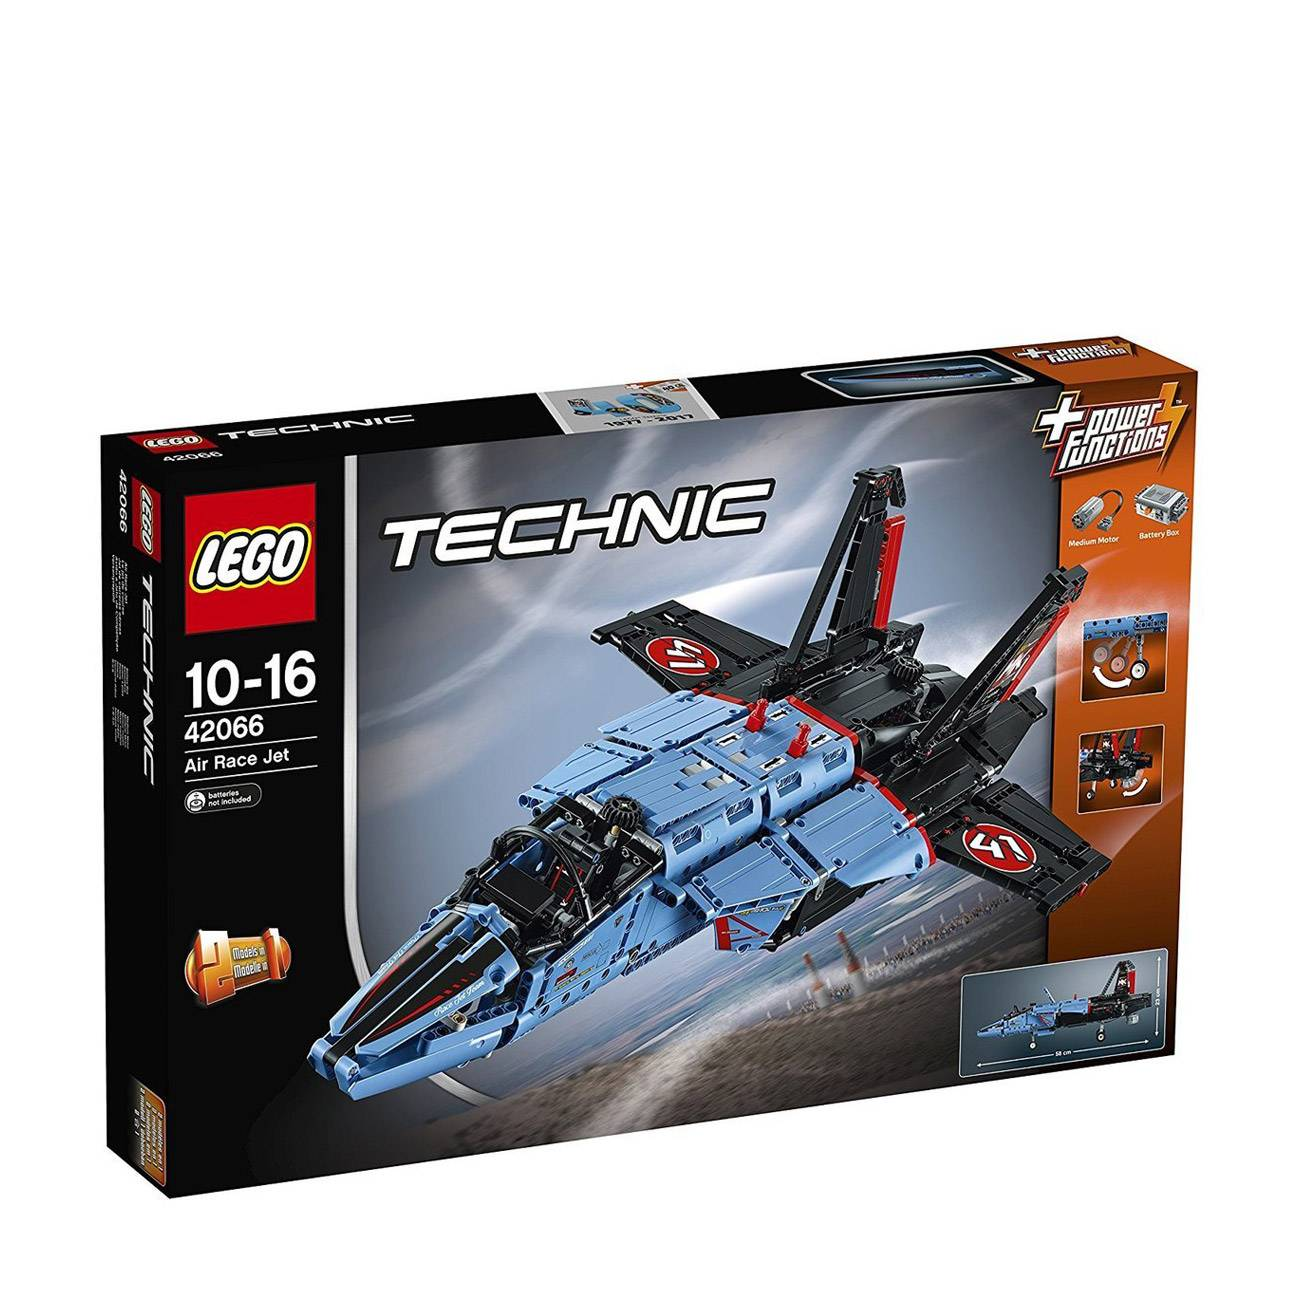 TECHNIC AIR RACE JET